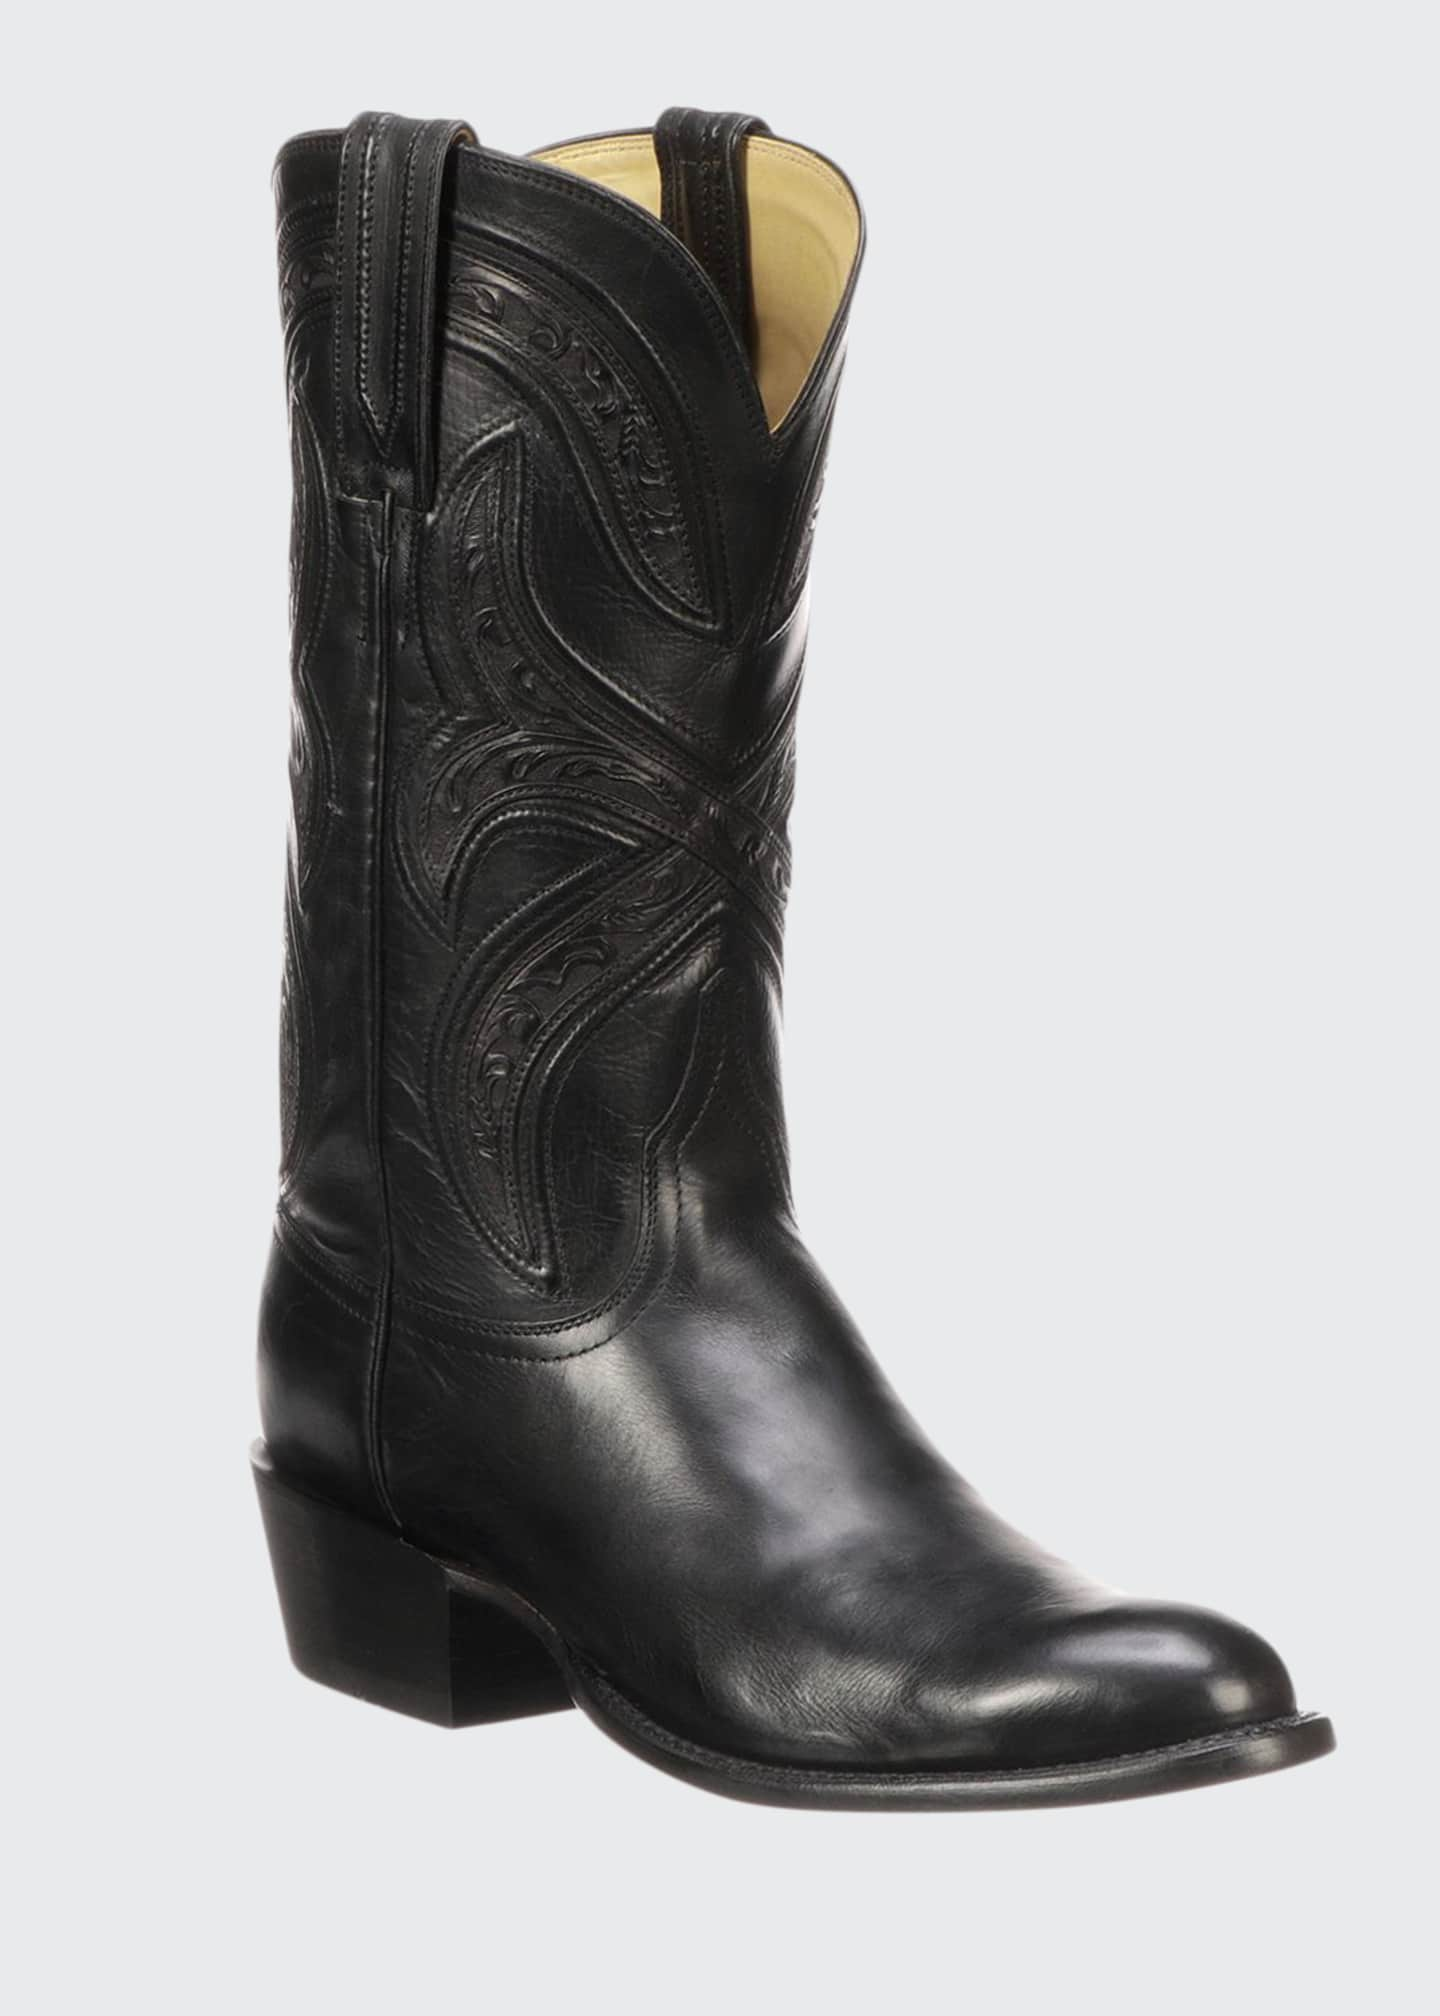 Lucchese Men's Knox Leather Cowboy Boots